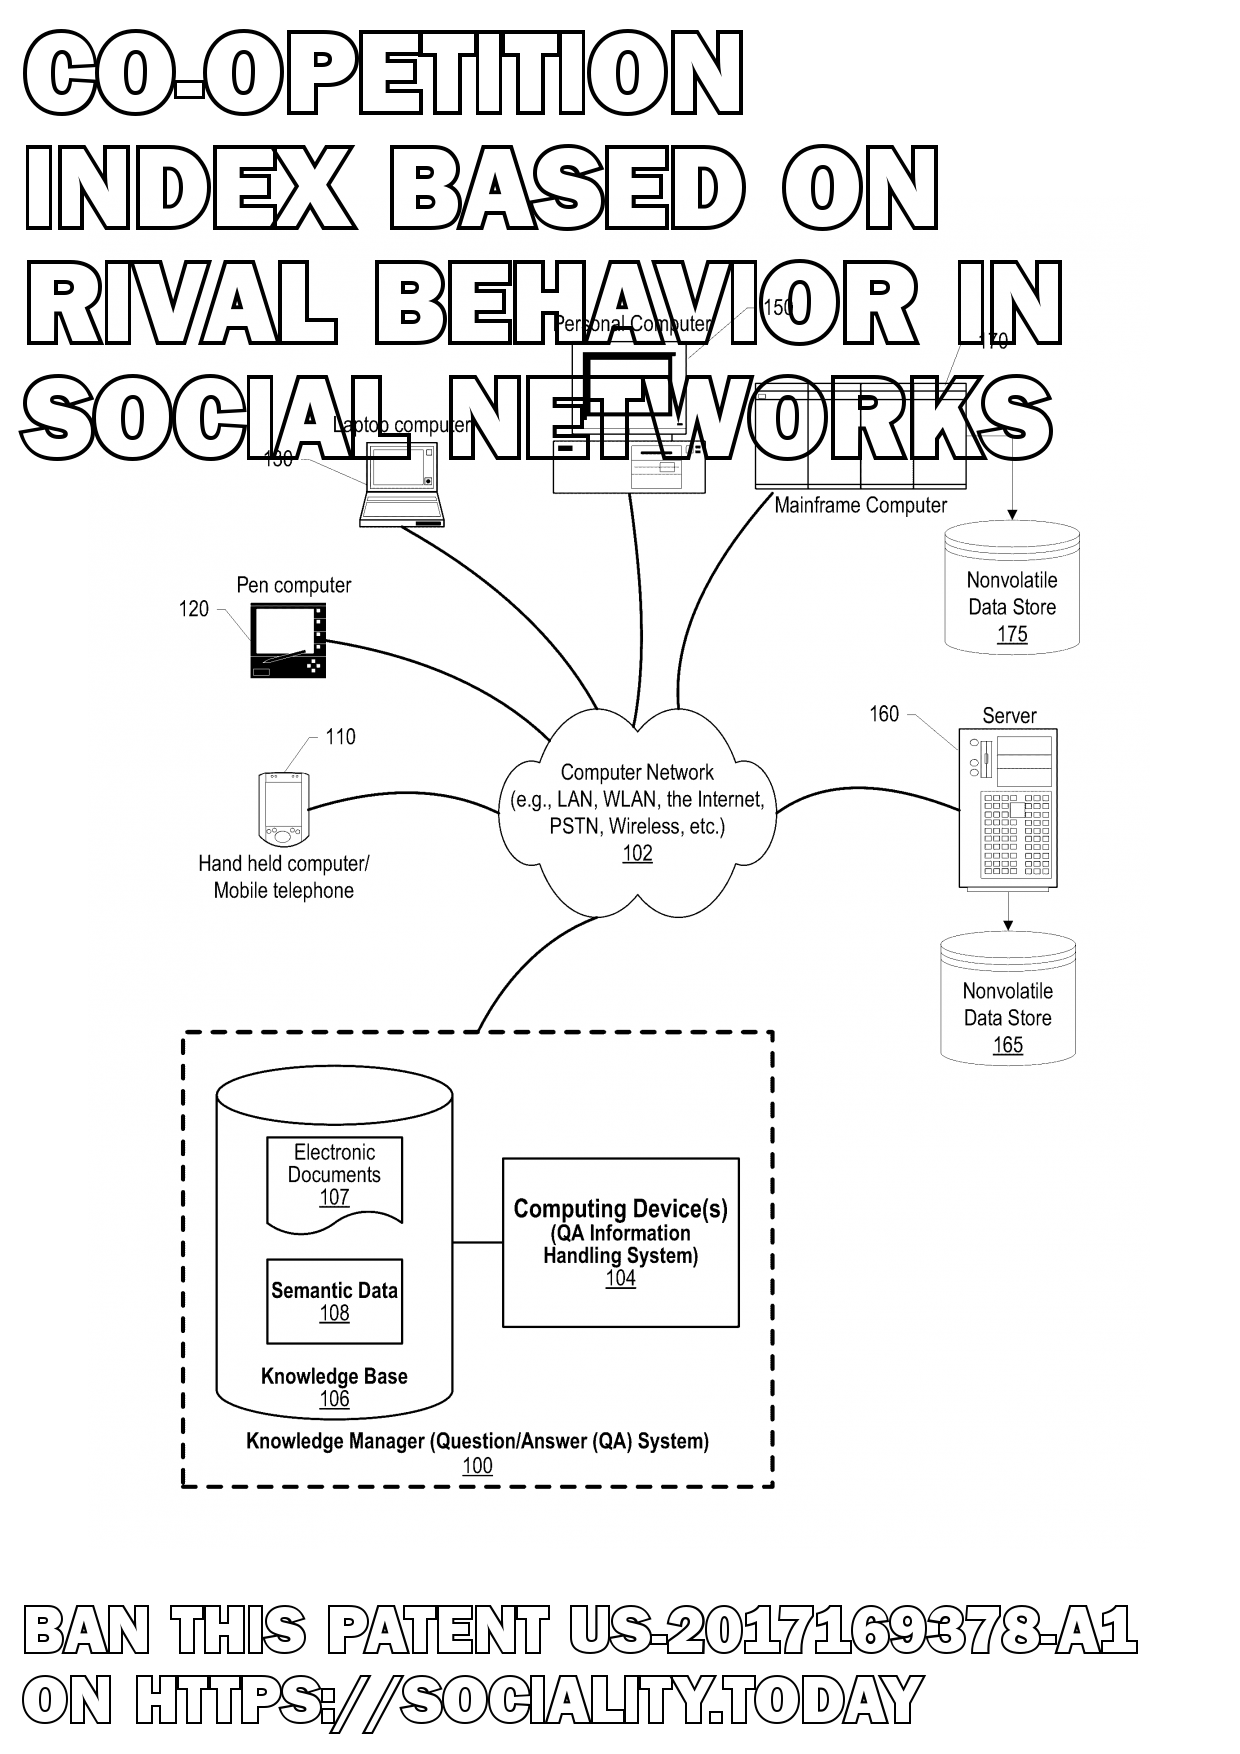 Co-opetition Index Based on Rival Behavior in Social Networks  - US-2017169378-A1